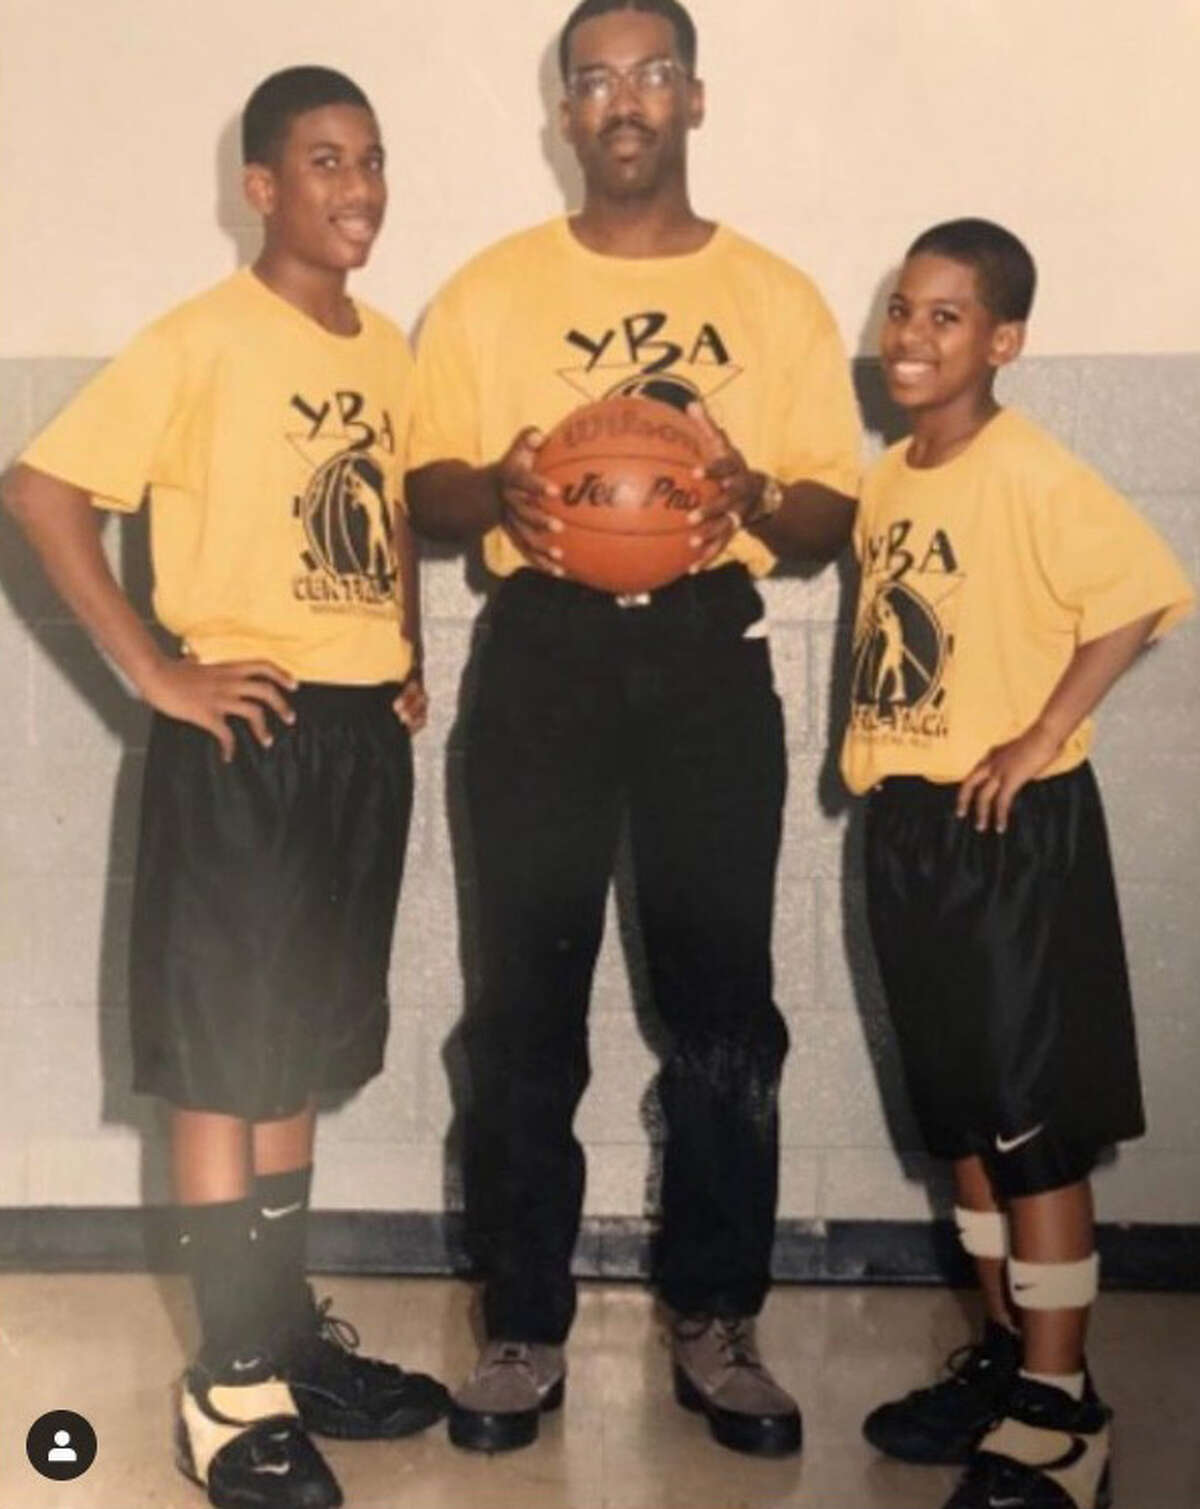 Houston Rockets When They Were Kids This kid on the right rocked the wristbands on his calves as a kid and grew up to be one of the leaders of the Rockets.